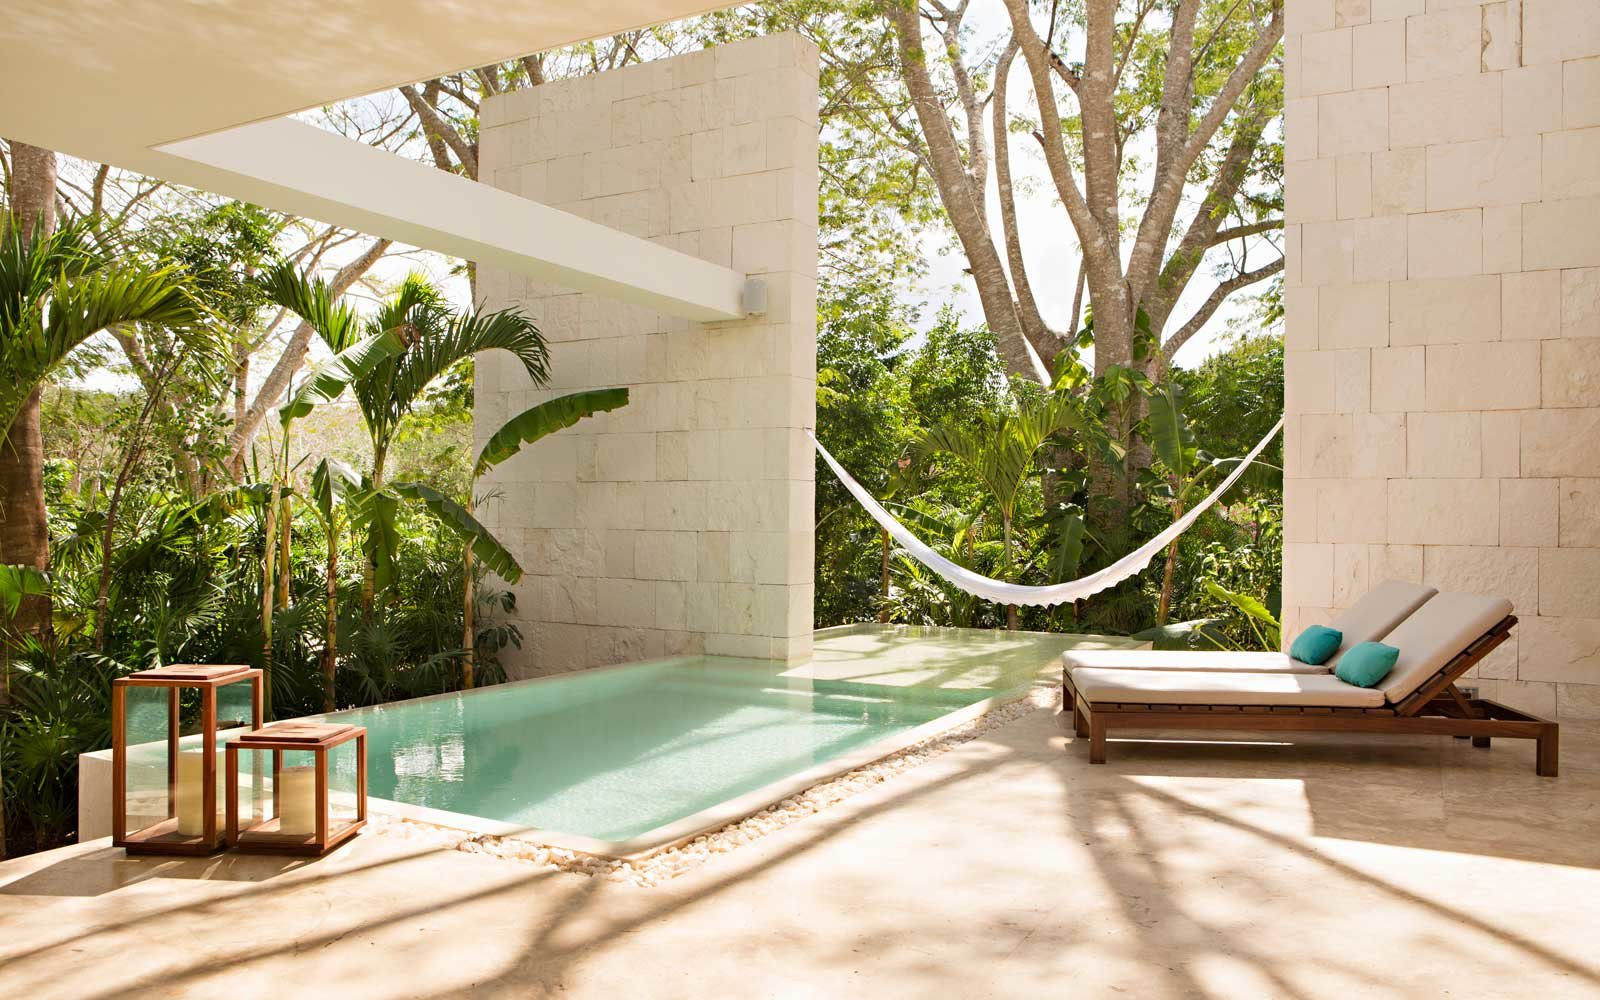 The Best Spas Retreats And Wellness Resorts For Detoxing Travel